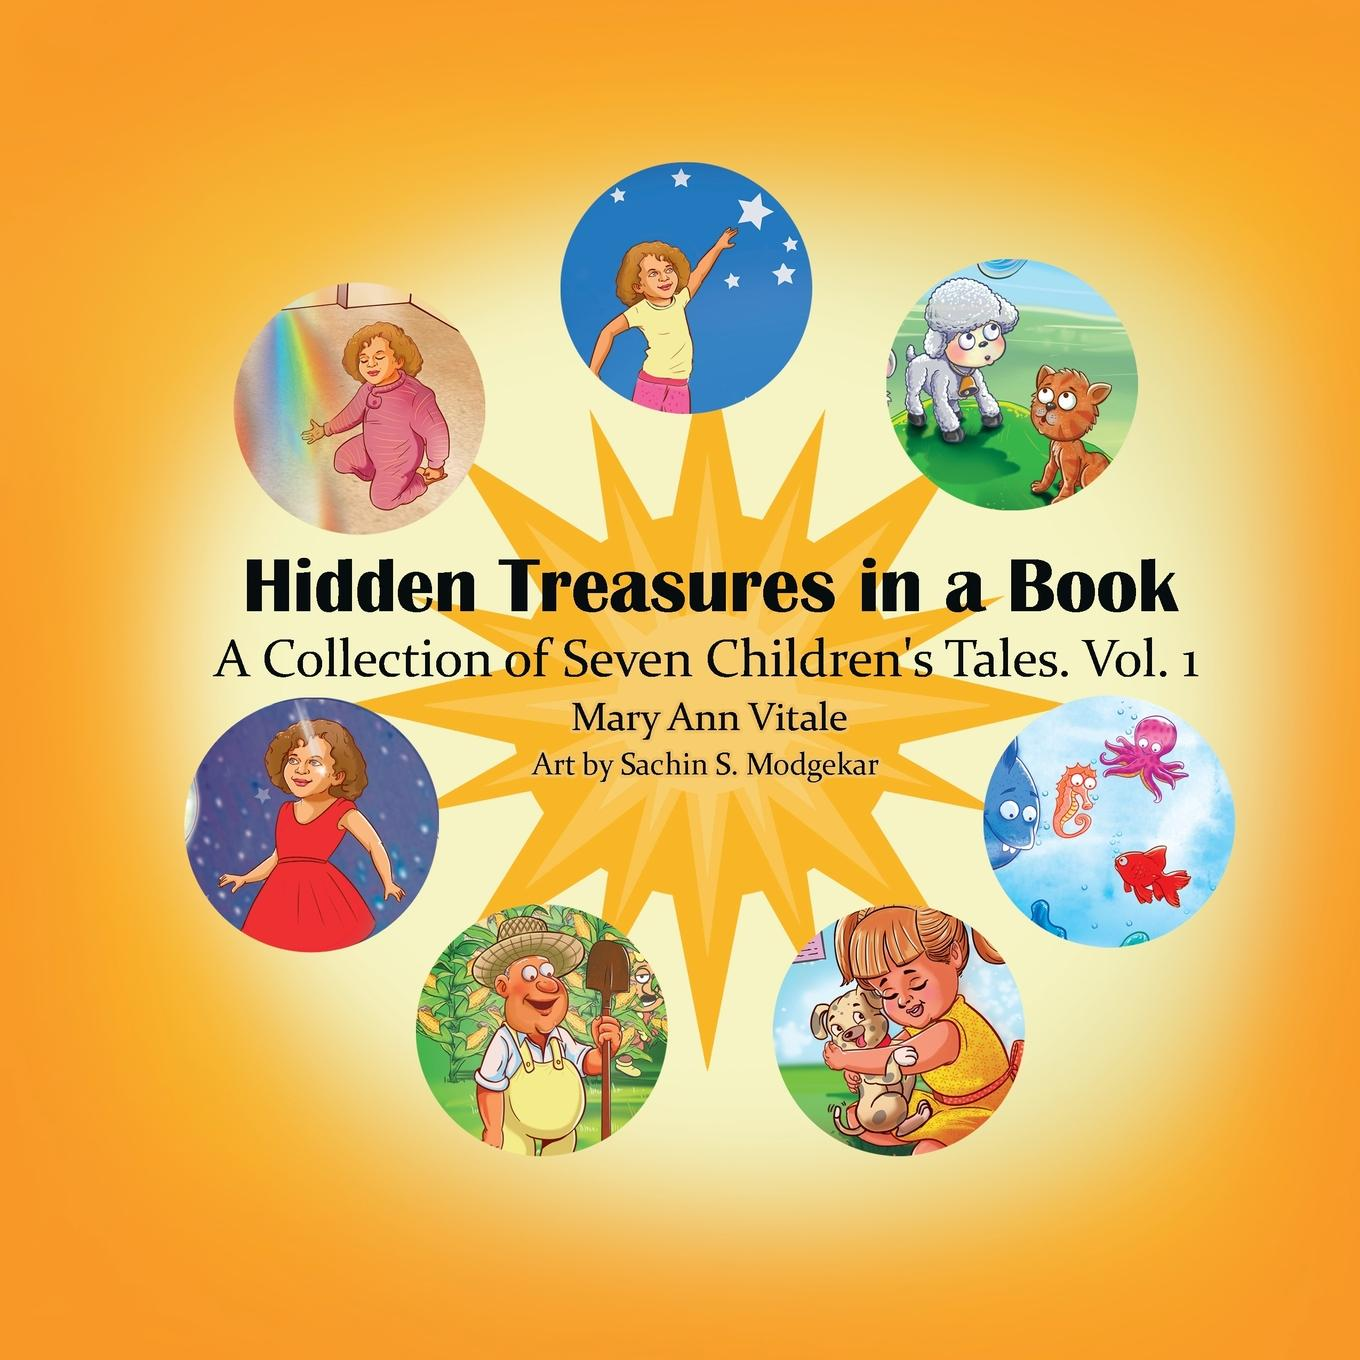 Hidden Treasures in a Book.: Hidden Treasures in a Book: A Collection of Seven Children's Tales Vol.1 (Paperback)